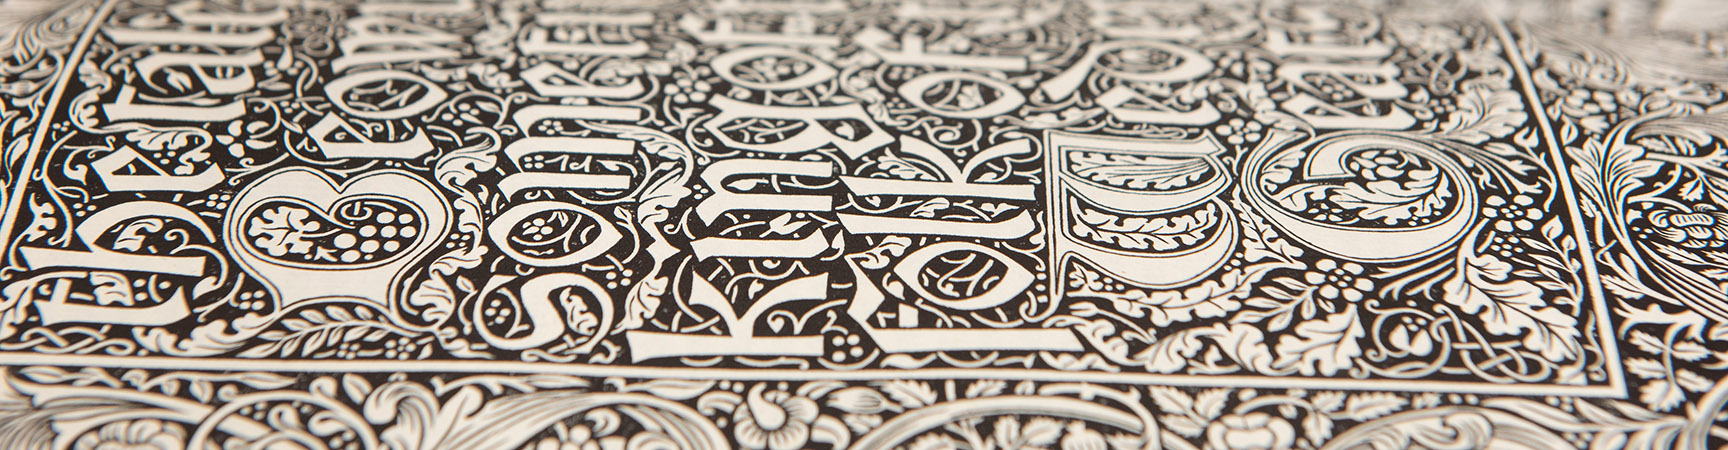 Detail of a decorative black and white print